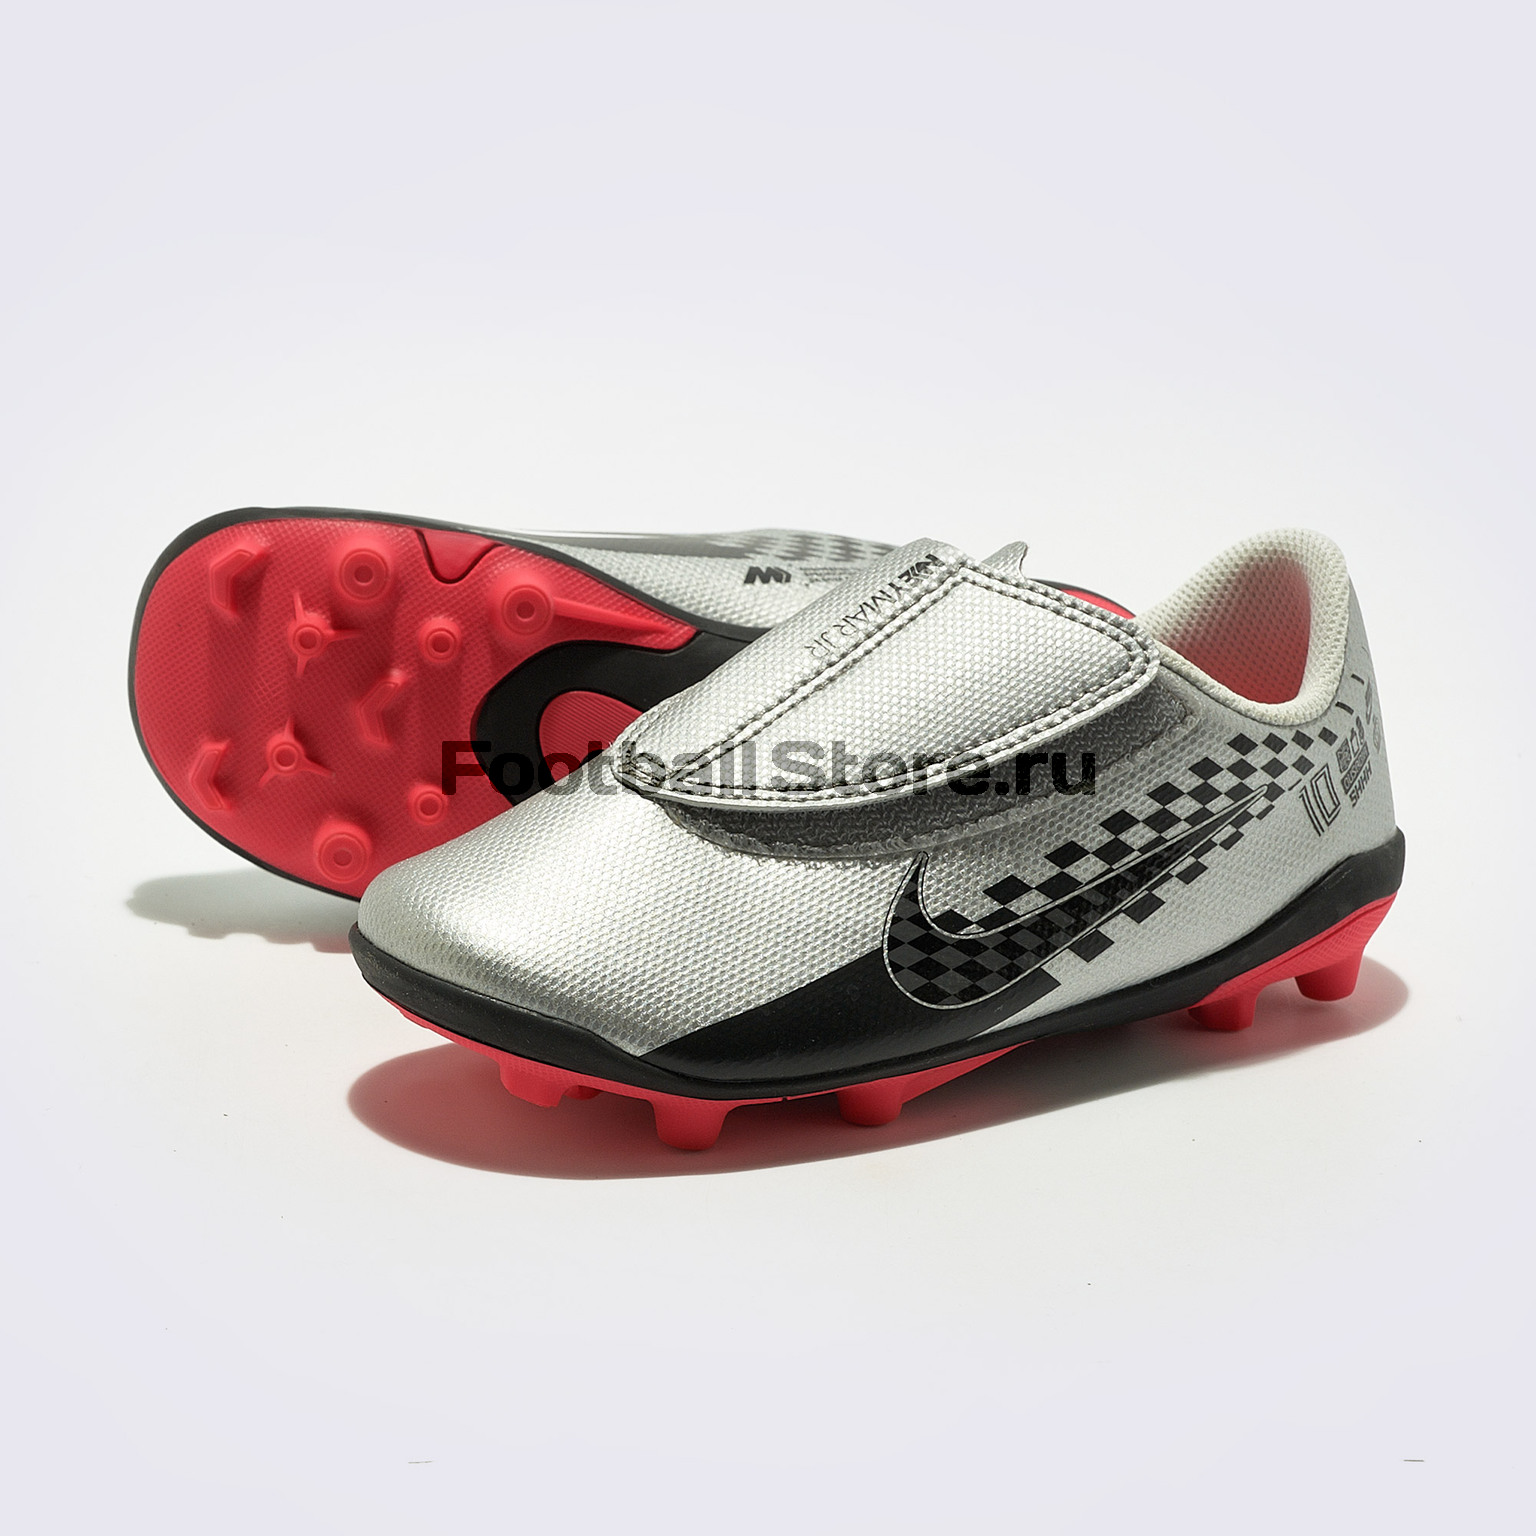 Бутсы детские Nike Vapor 13 Club Neymar MG PS (V) AT8164-006